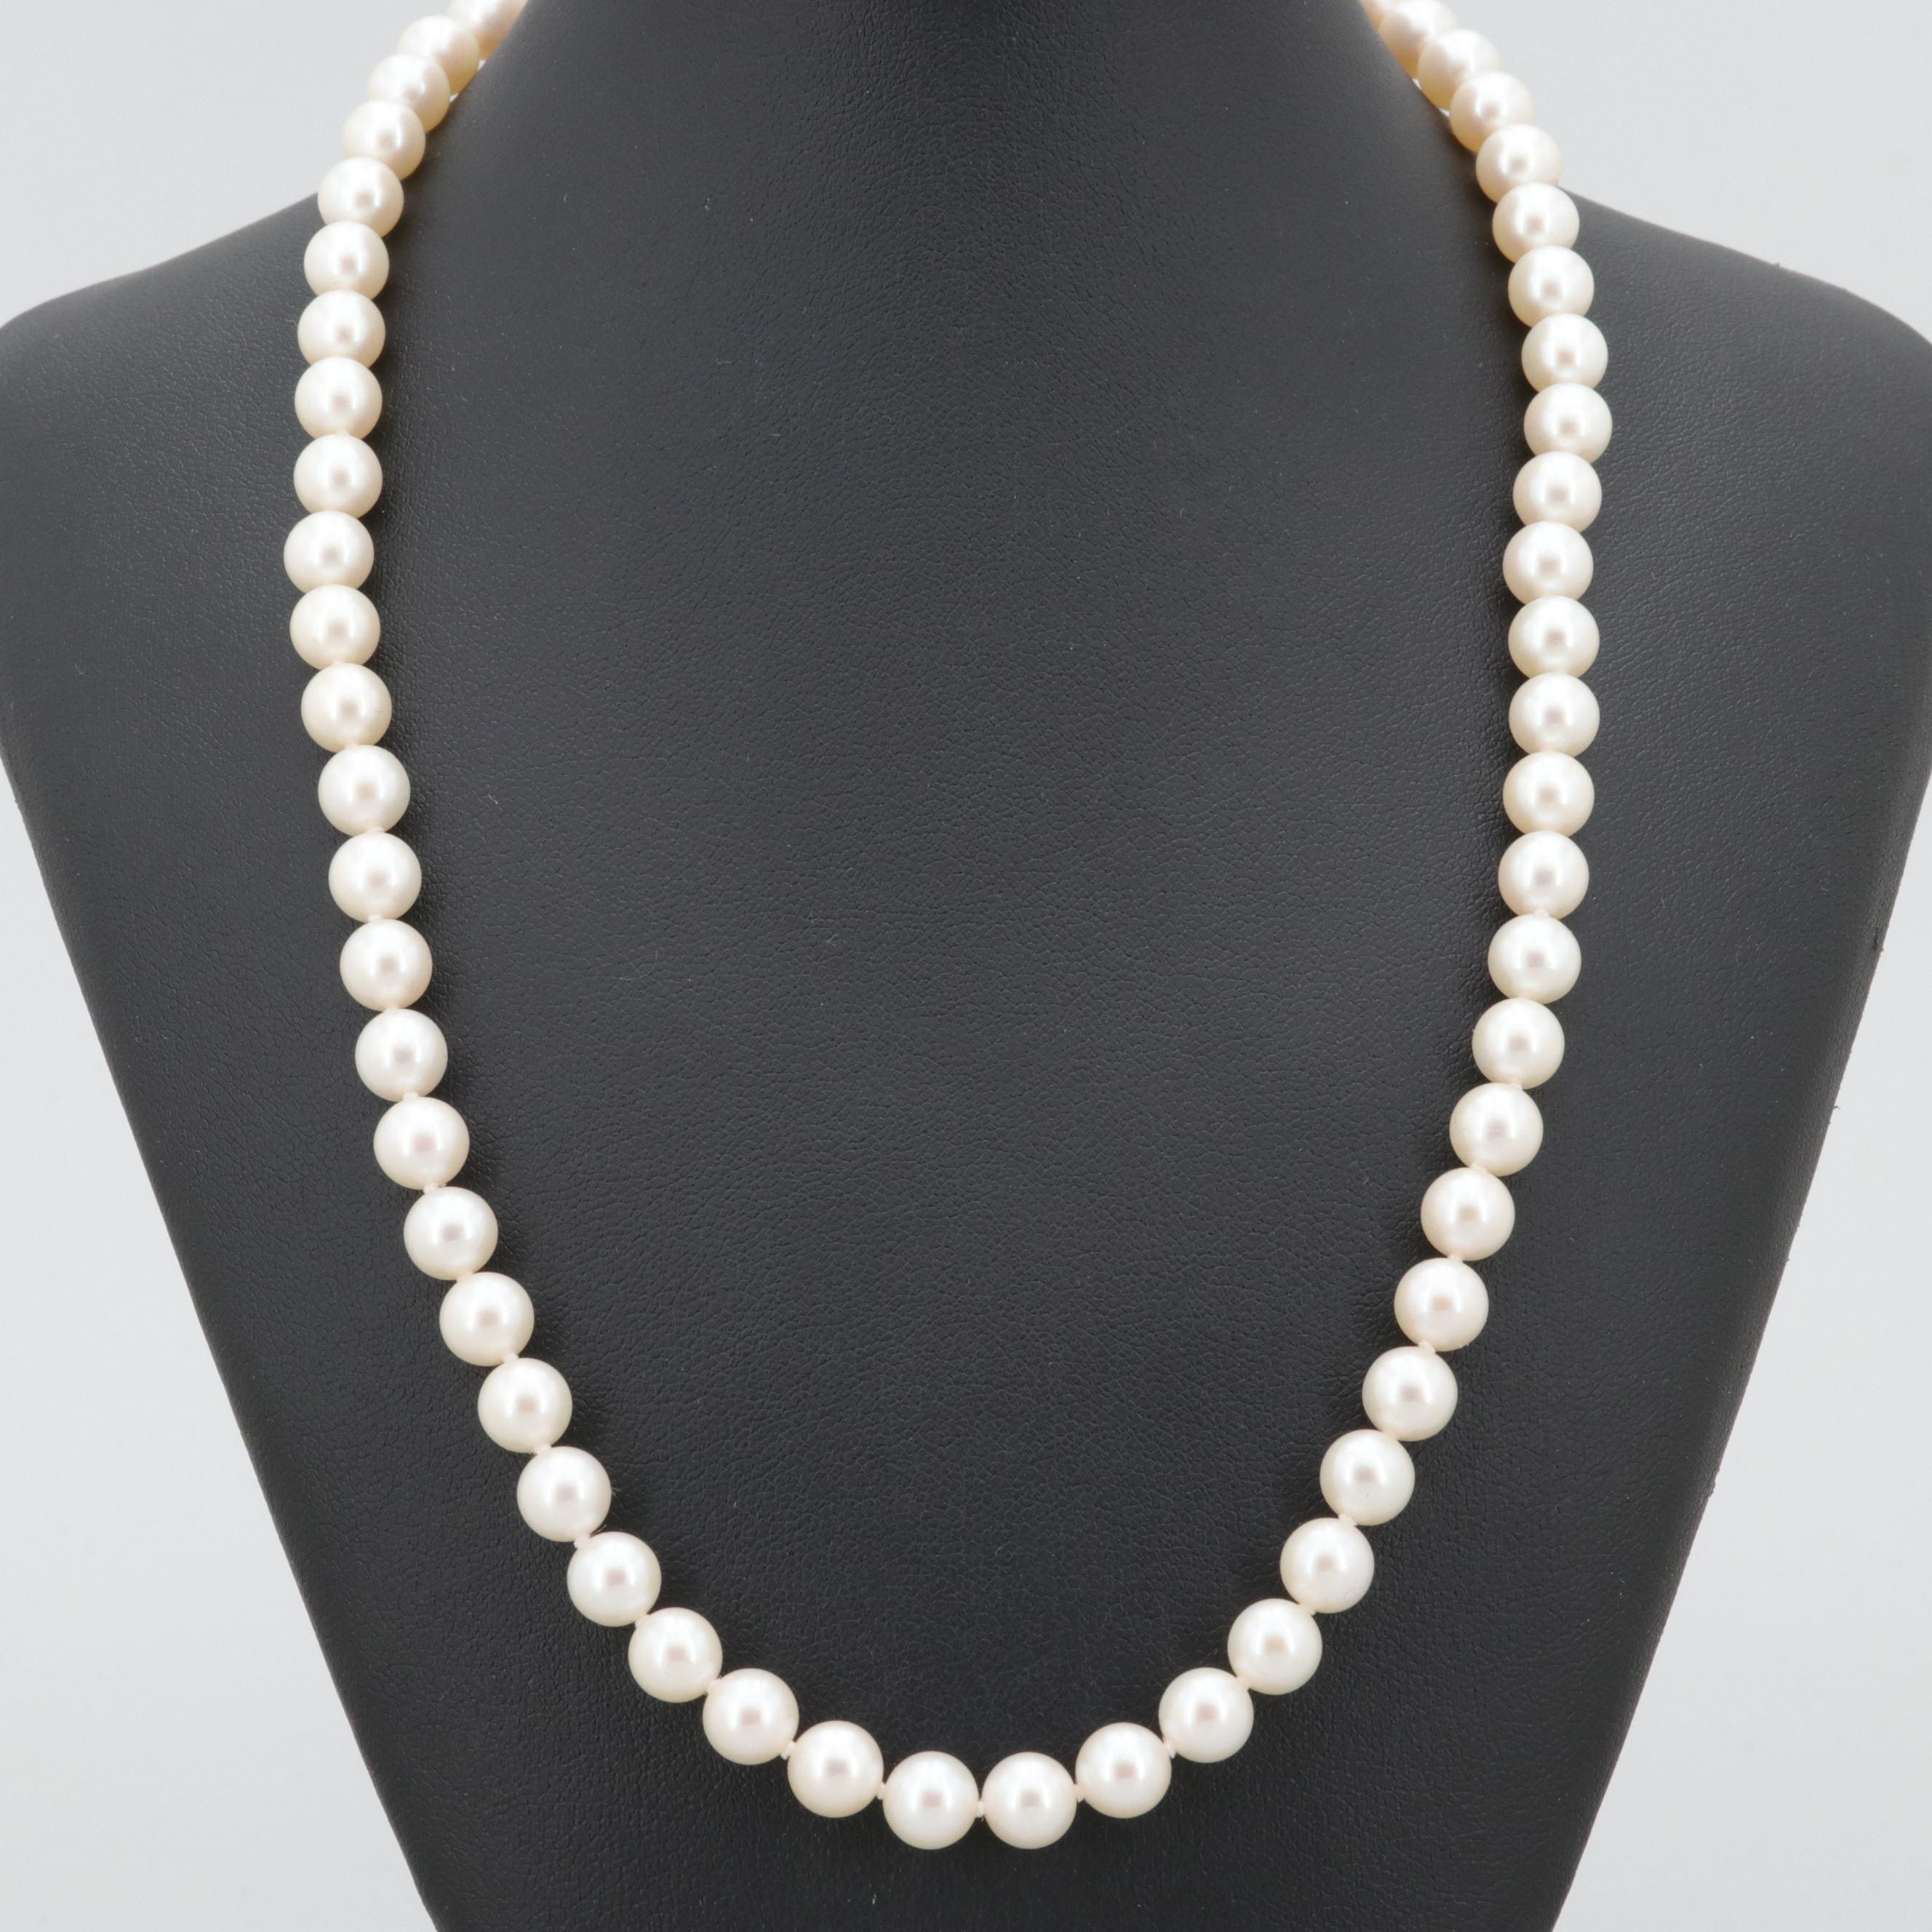 Blue Lagoon by Mikimoto 14K Yellow Gold Cultured Pearl Necklace